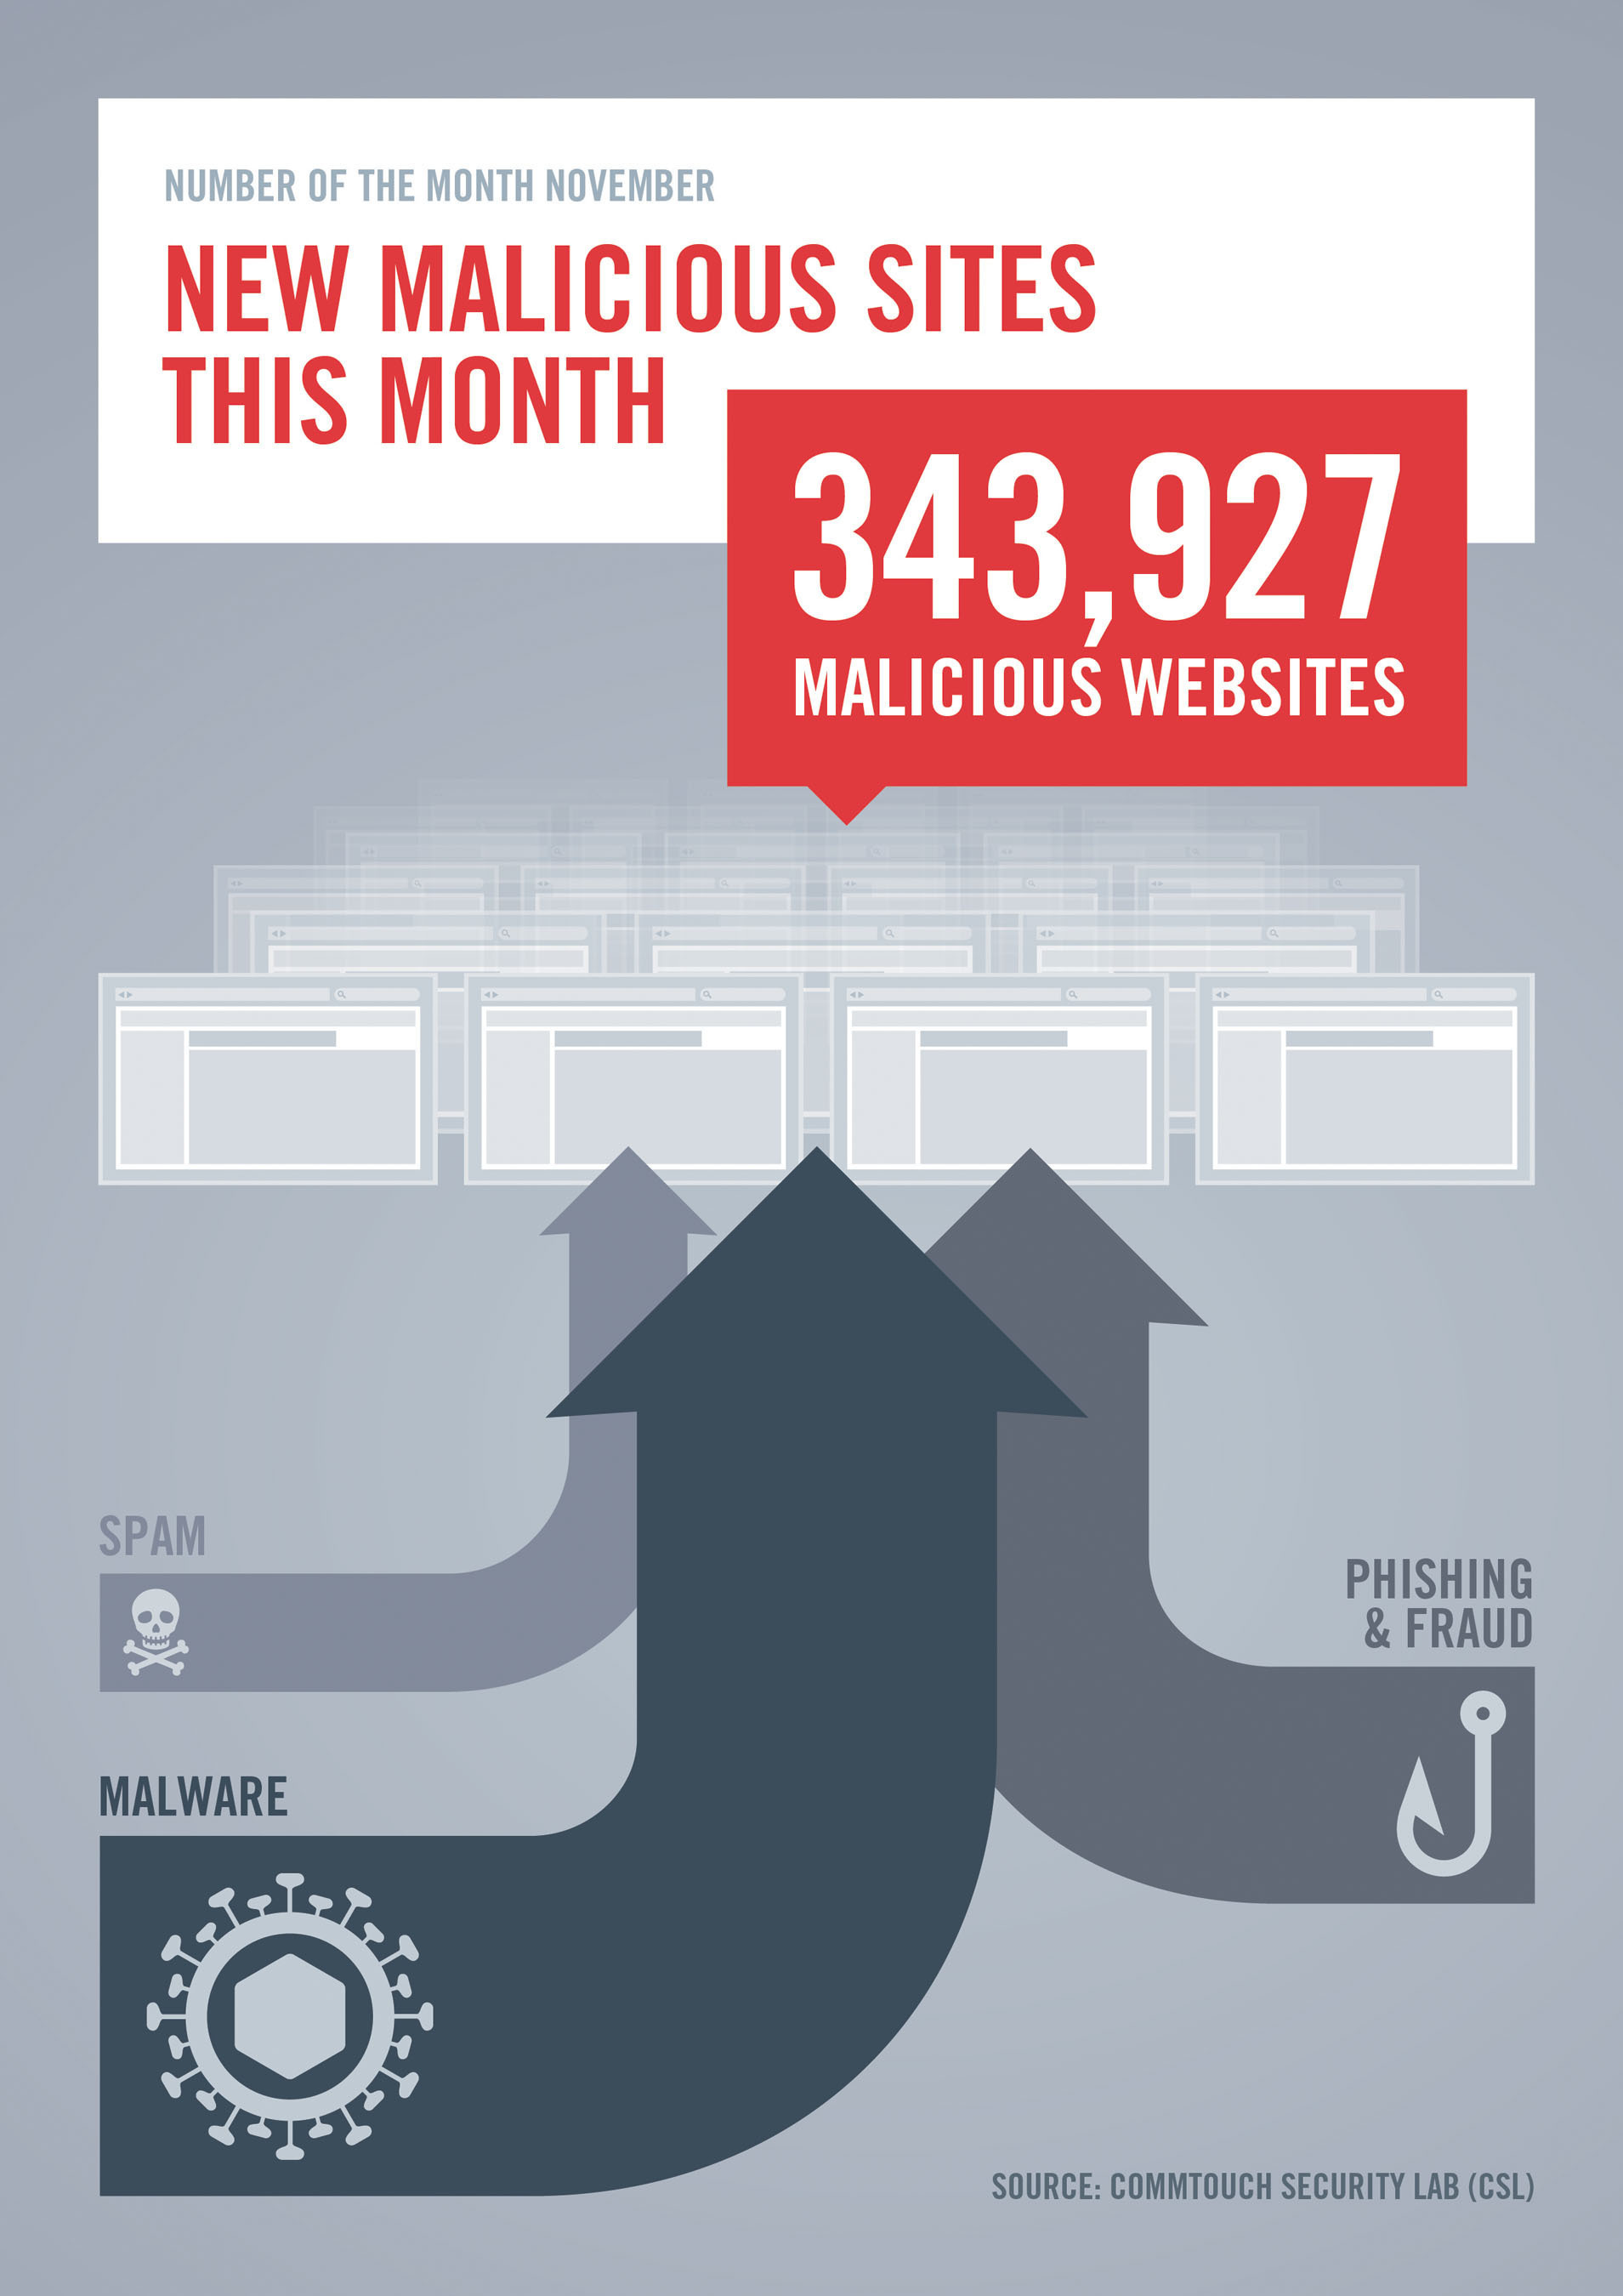 The Commtouch Security Lab (CSL) published its Security Number of the Month for November: Within the last 30 ...